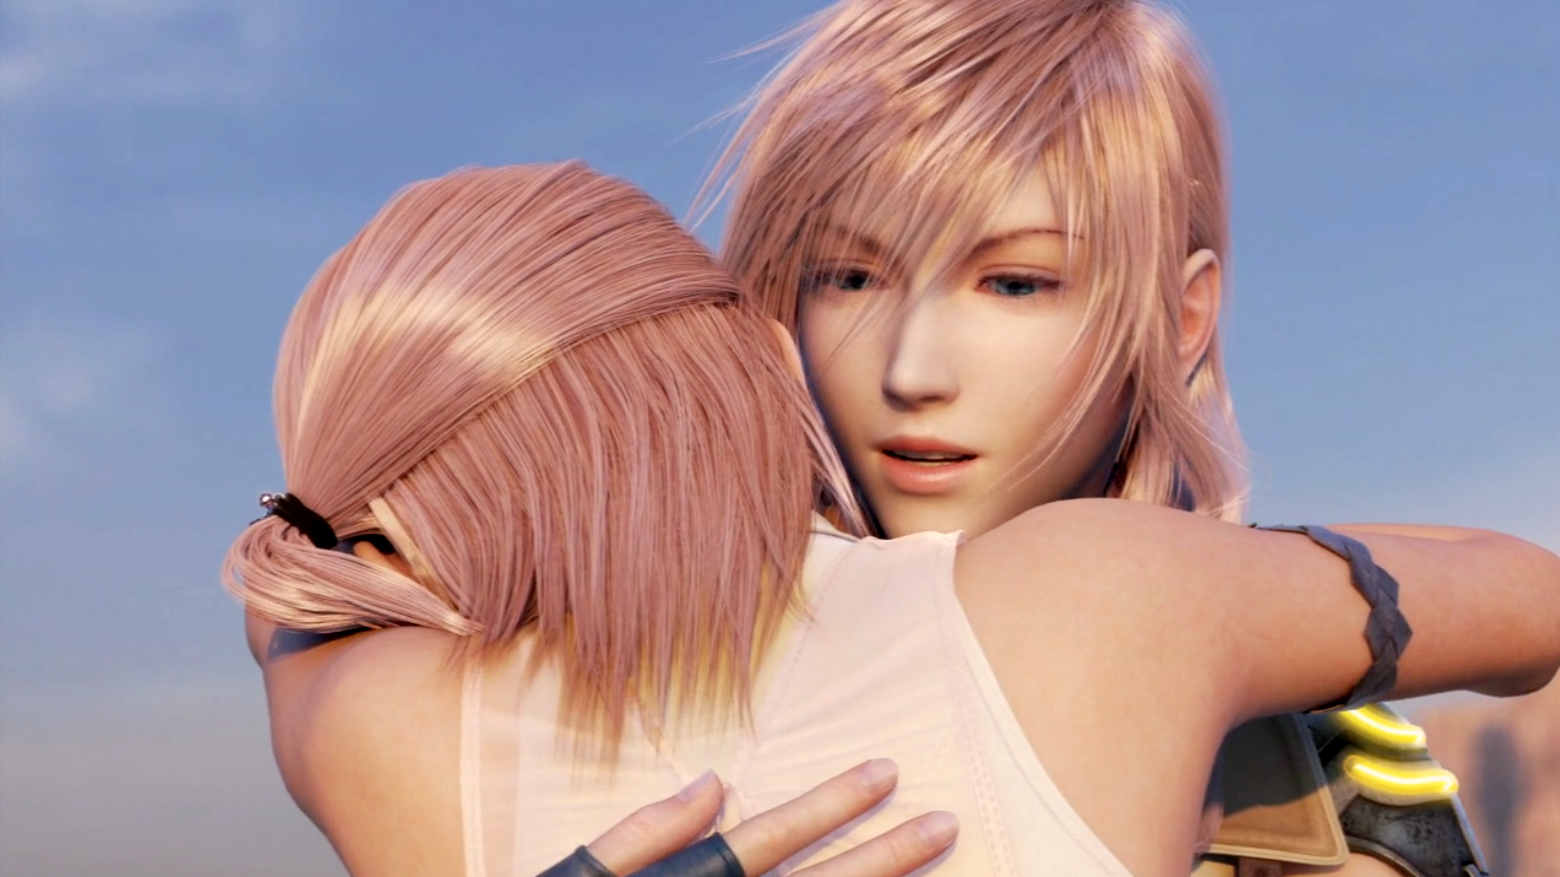 Serah amp Lightning reunite pngFinal Fantasy Serah And Lightning